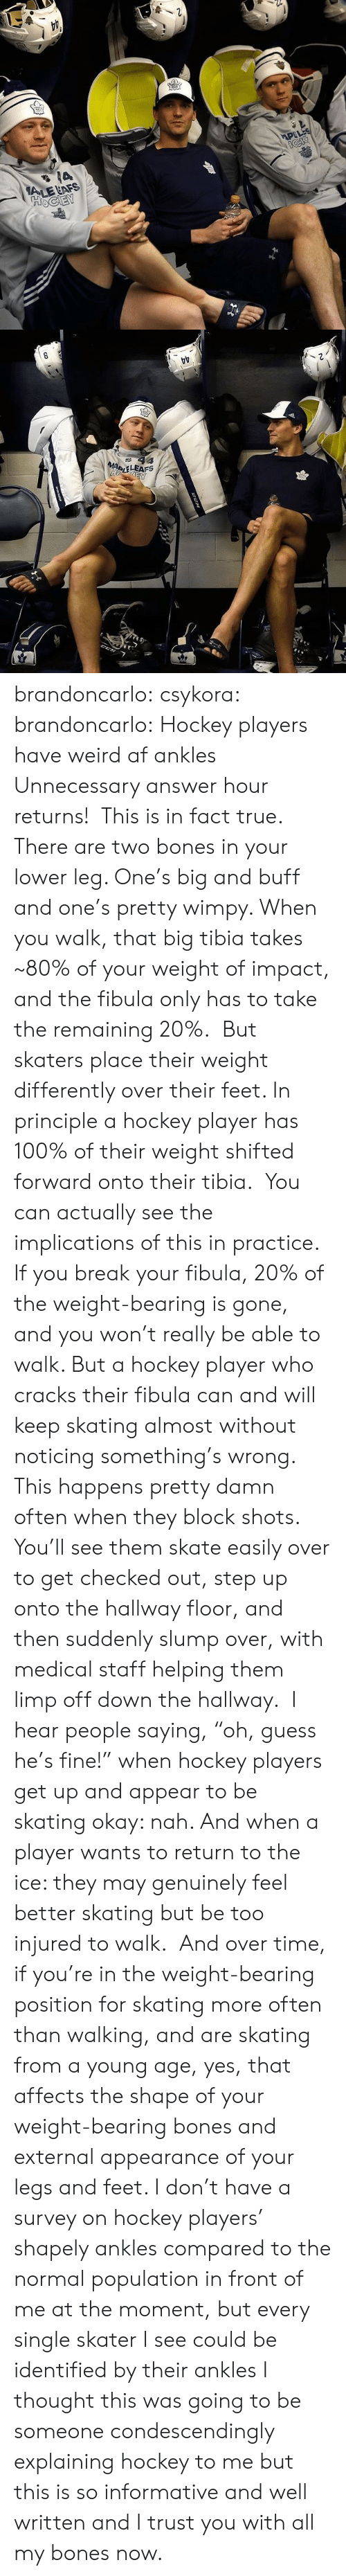 """Informative: brandoncarlo:  csykora:   brandoncarlo: Hockey players have weird af ankles Unnecessary answer hour returns! This is in fact true. There are two bones in your lower leg. One's big and buff and one's pretty wimpy. When you walk, that big tibia takes ~80% of your weight of impact, and the fibula only has to take the remaining 20%. But skaters place their weight differently over their feet. In principle a hockey player has 100% of their weight shifted forward onto their tibia. You can actually see the implications of this in practice. If youbreak your fibula, 20% of the weight-bearing is gone, and you won't really be able to walk. But a hockey player who cracks their fibula can and will keep skating almost without noticing something's wrong. This happens pretty damn often when they block shots. You'll see them skate easily over to get checked out, step up onto the hallway floor, and then suddenly slump over, with medical staff helping them limp off down the hallway. I hear people saying,""""oh, guess he's fine!"""" when hockey players get up and appear to be skating okay: nah. And when a player wants to return to the ice: they may genuinely feel better skating but be too injured to walk. And over time, if you're in the weight-bearing position for skating more often than walking, and are skating from a young age, yes, that affects the shape of your weight-bearing bones and external appearance of your legs and feet. I don't have a survey on hockey players' shapely ankles compared to the normal population in front of me at the moment, but every single skater I see could be identified by their ankles   I thought this was going to be someone condescendingly explaining hockey to me but this is so informative and well written and I trust you with all my bones now."""